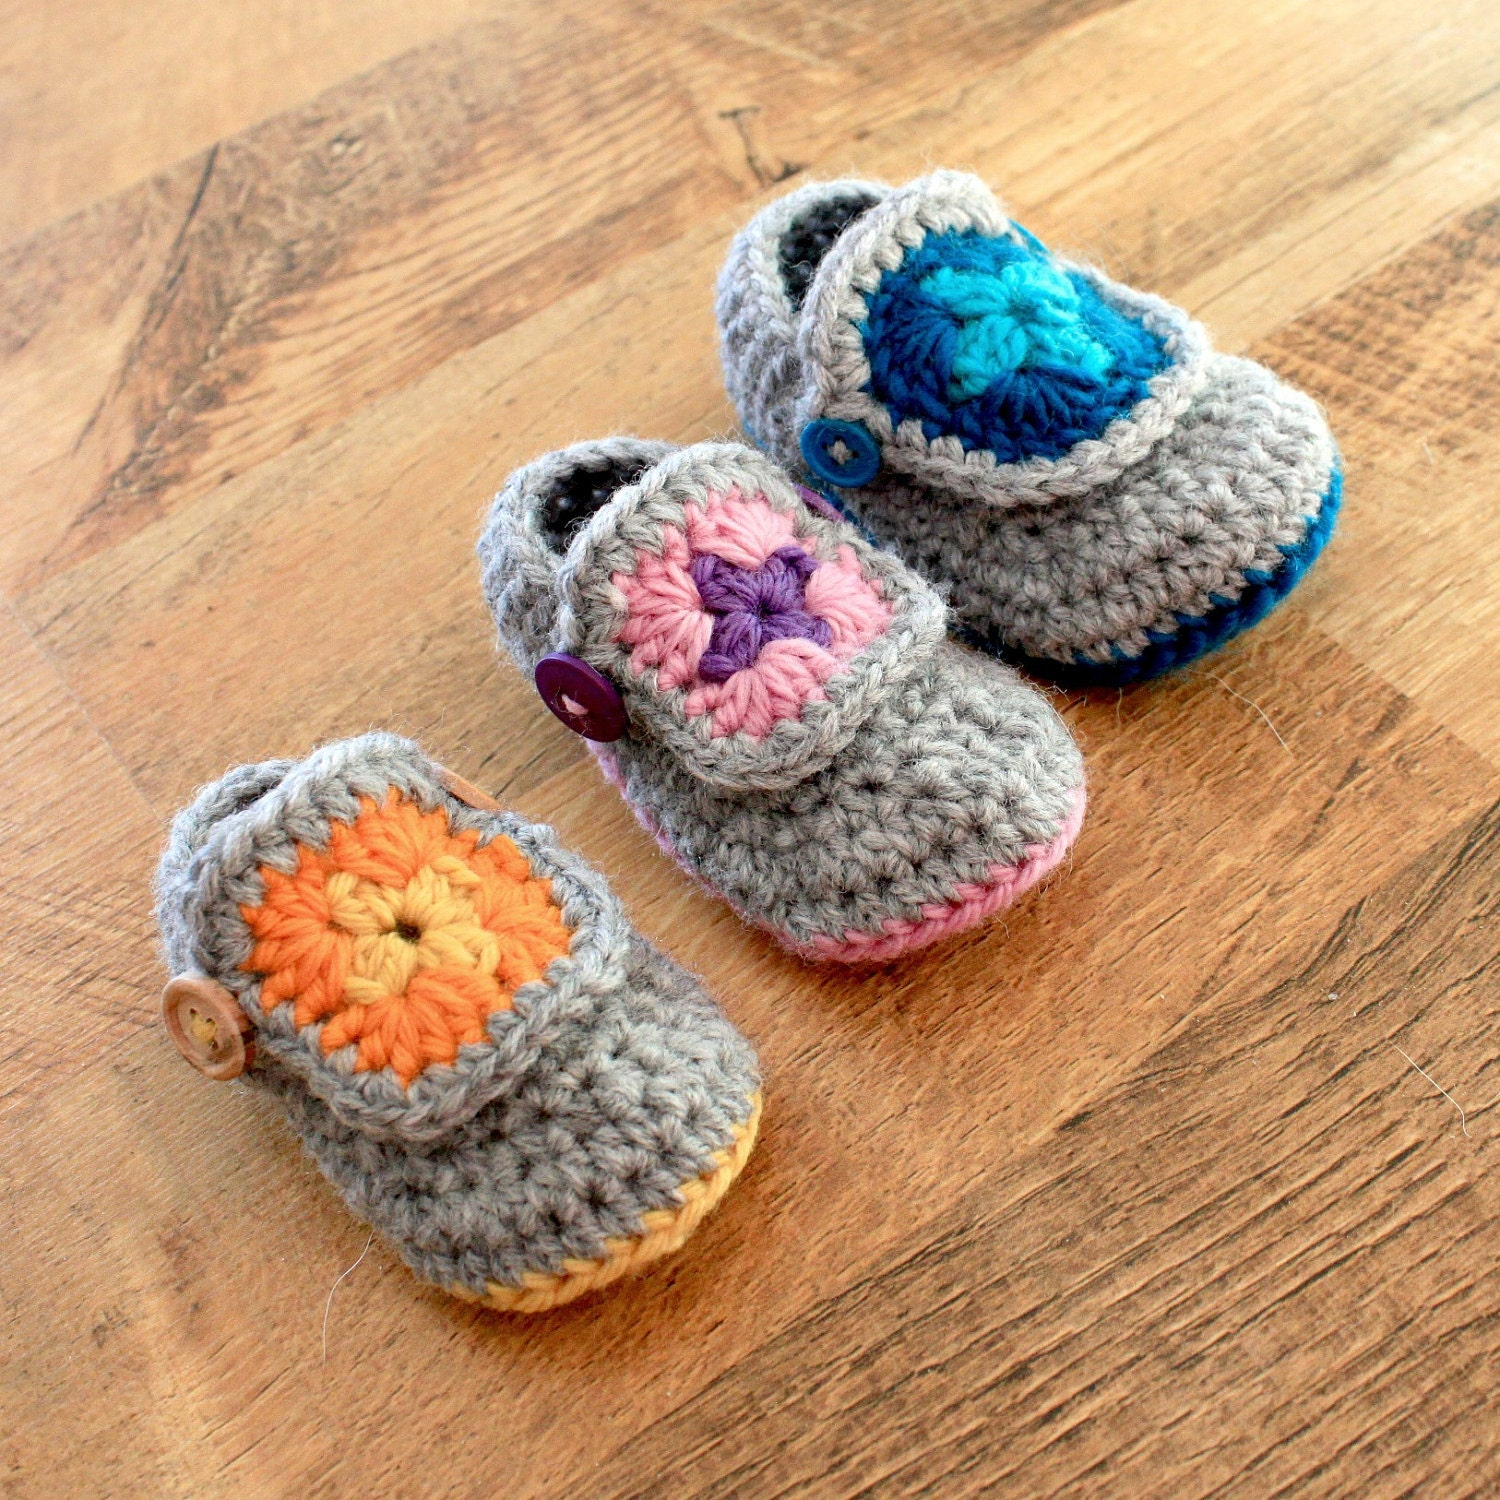 Crochet Pattern - Granny Square Baby Booties (Sizes Newborn to 18 mo)